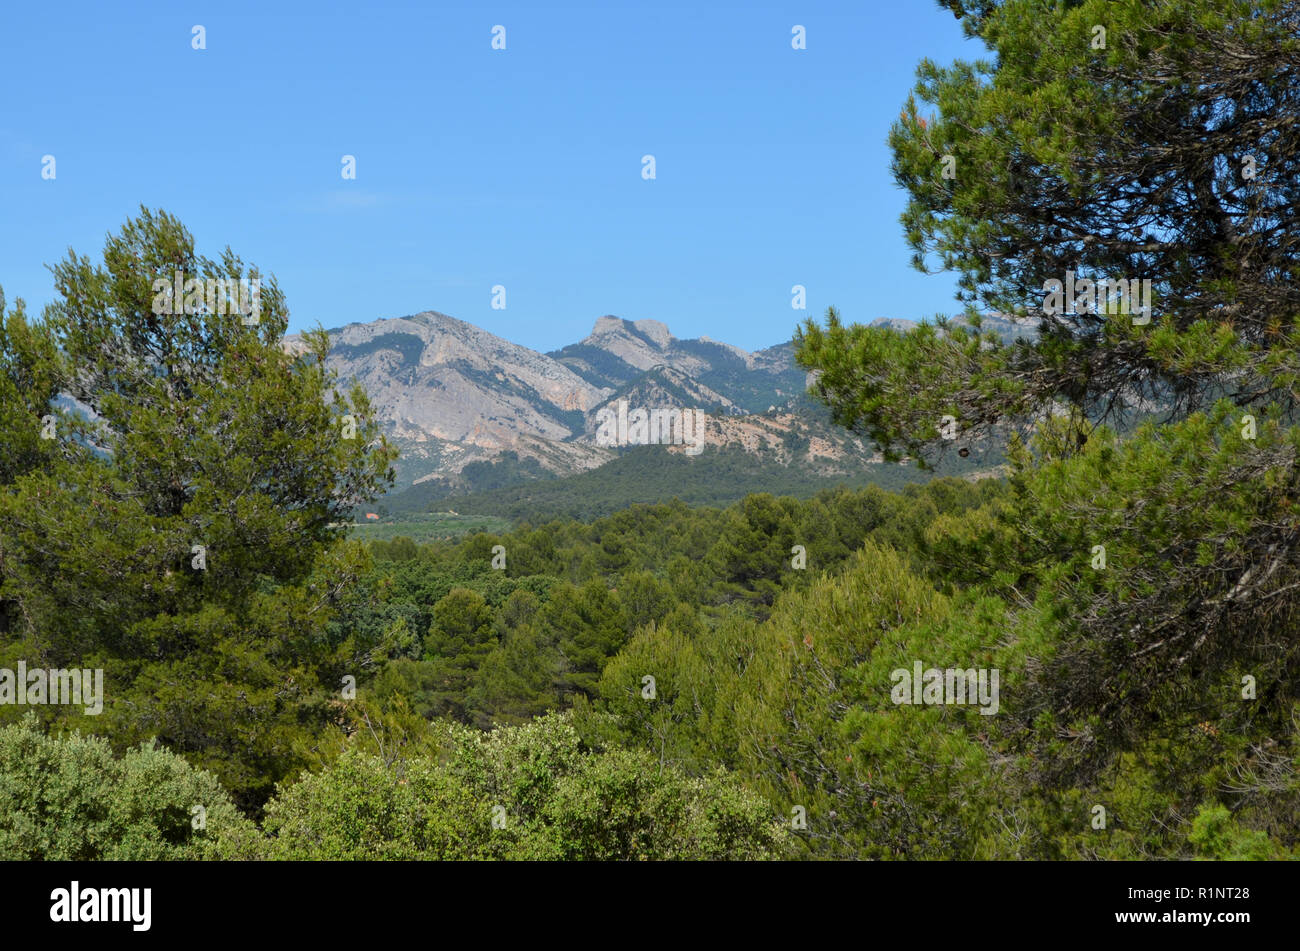 Pine forests in Els Ports Natural Park, a limestone mountain massif at the border between Aragon and Catalonia - Stock Image